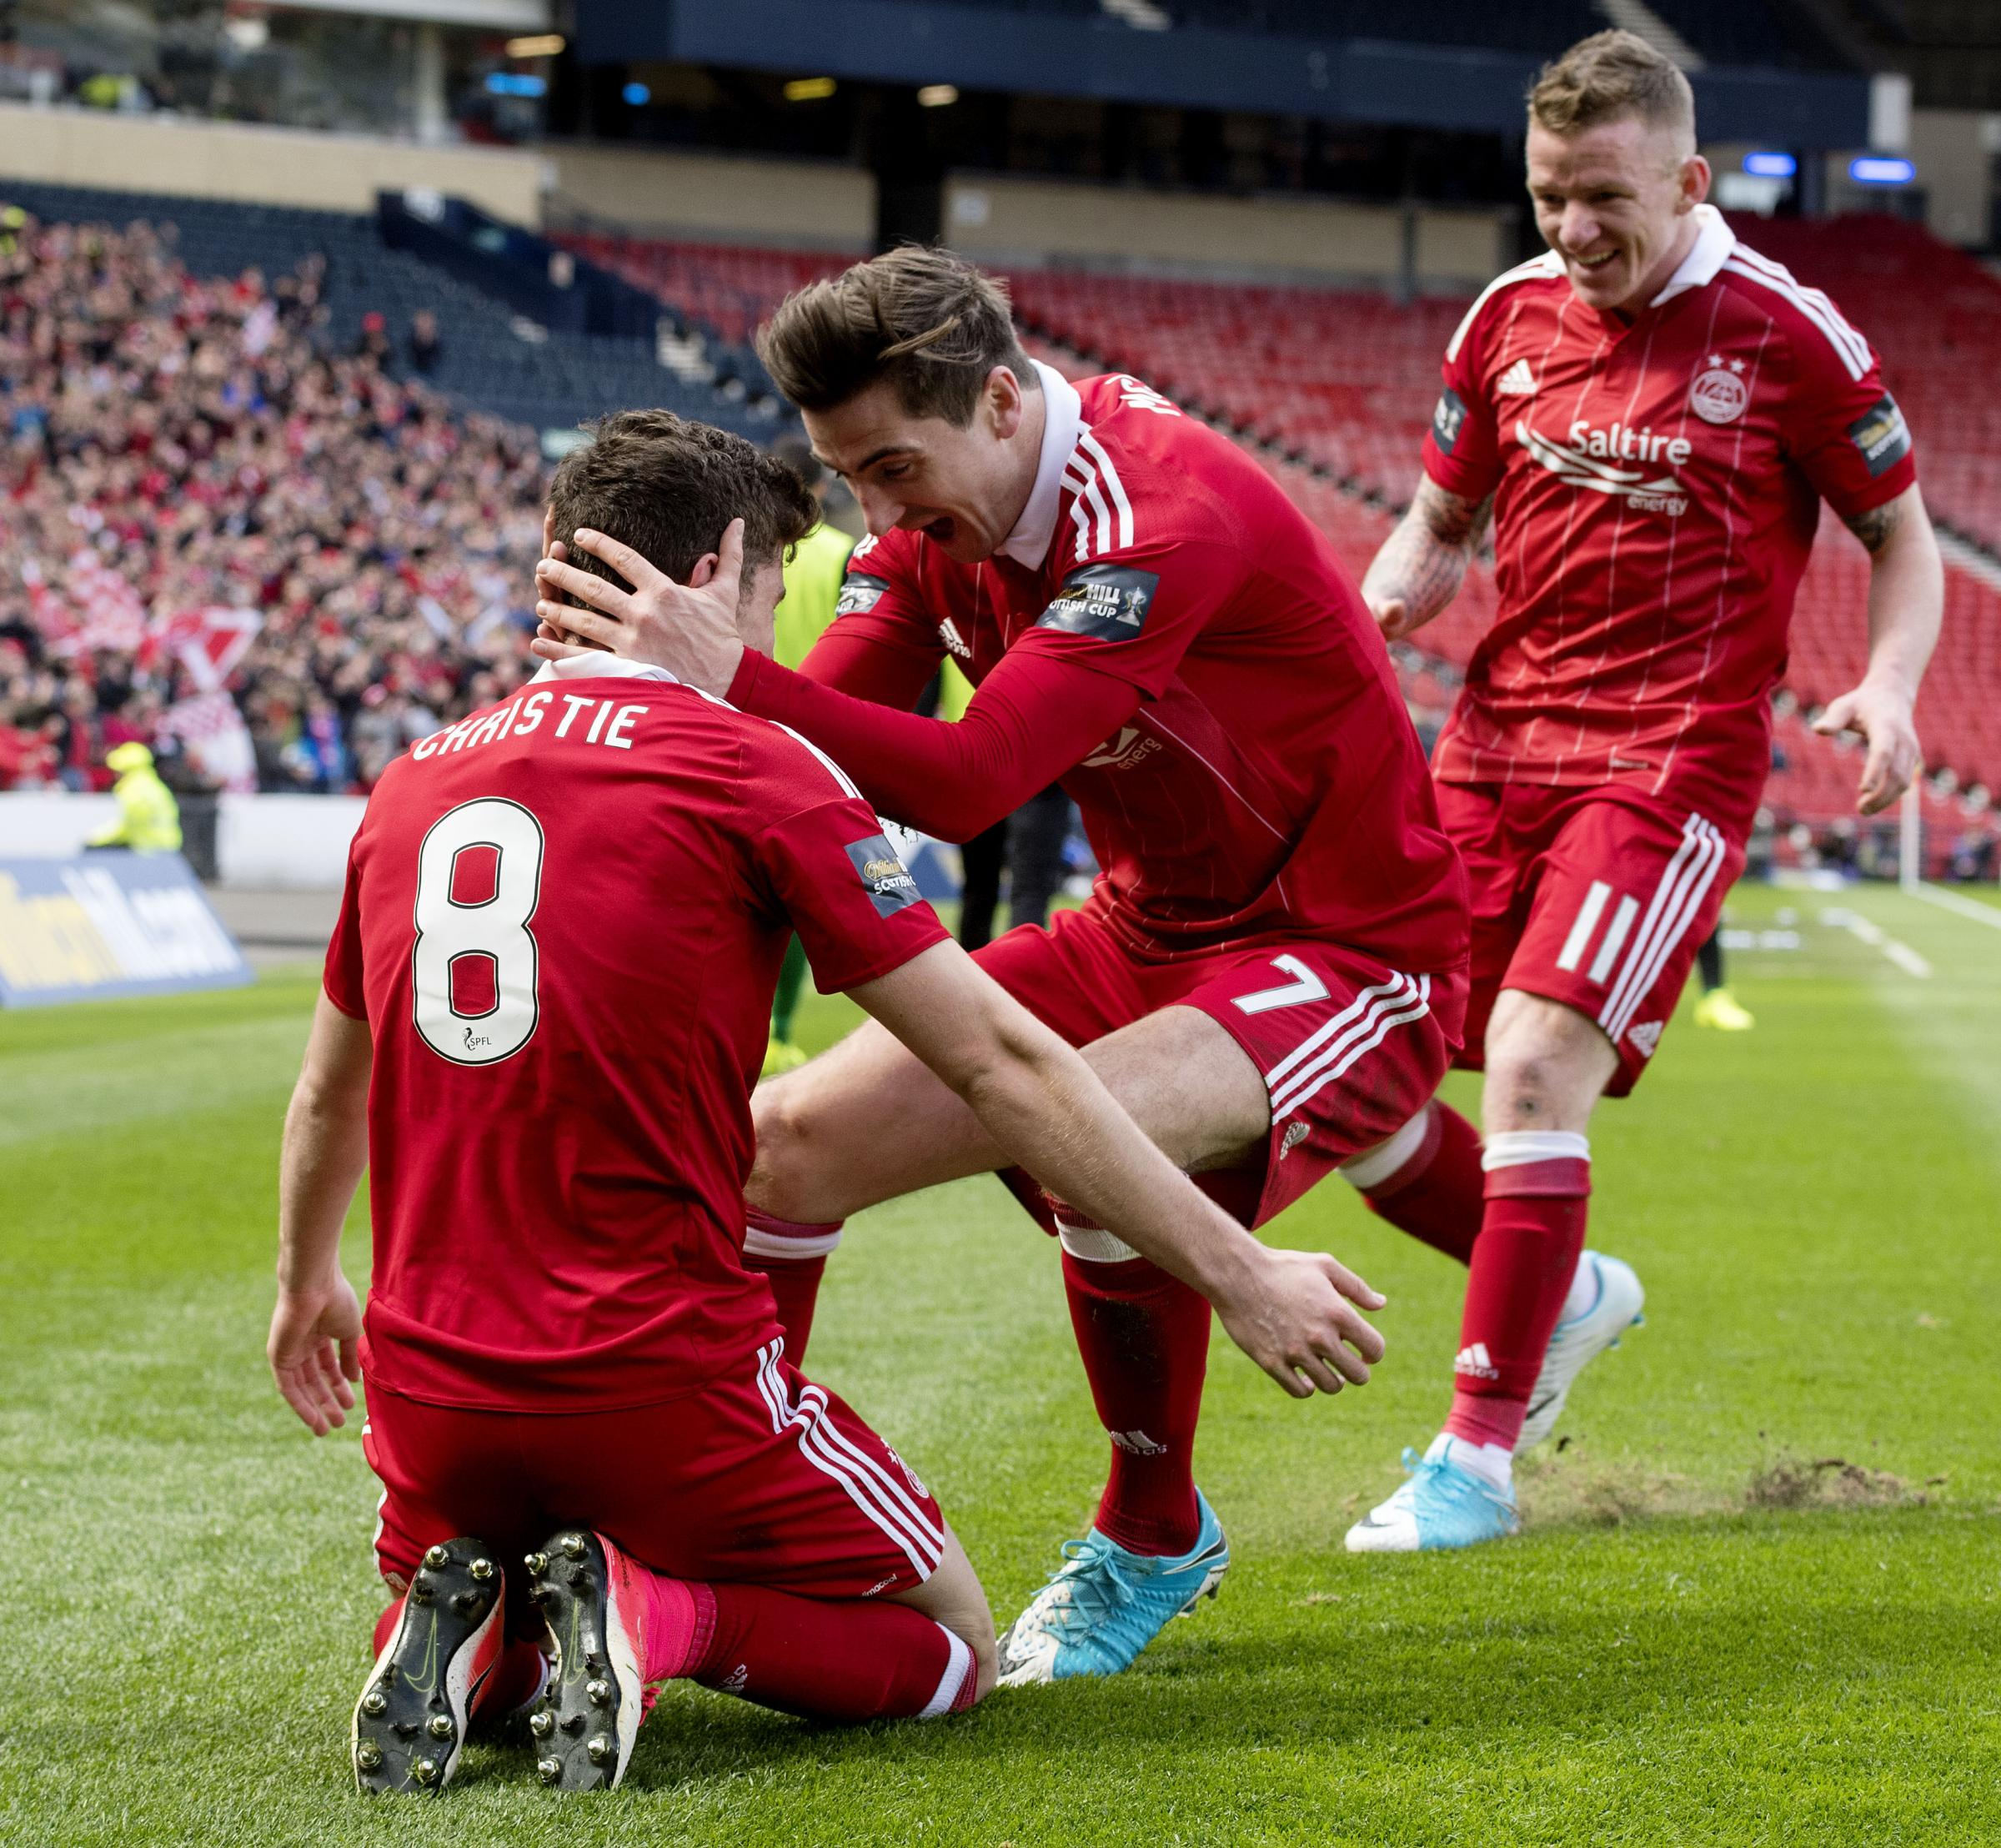 Scottish Cup dilemma for Aberdeen hero Ryan Christie as win for parent club Celtic rules him out of final